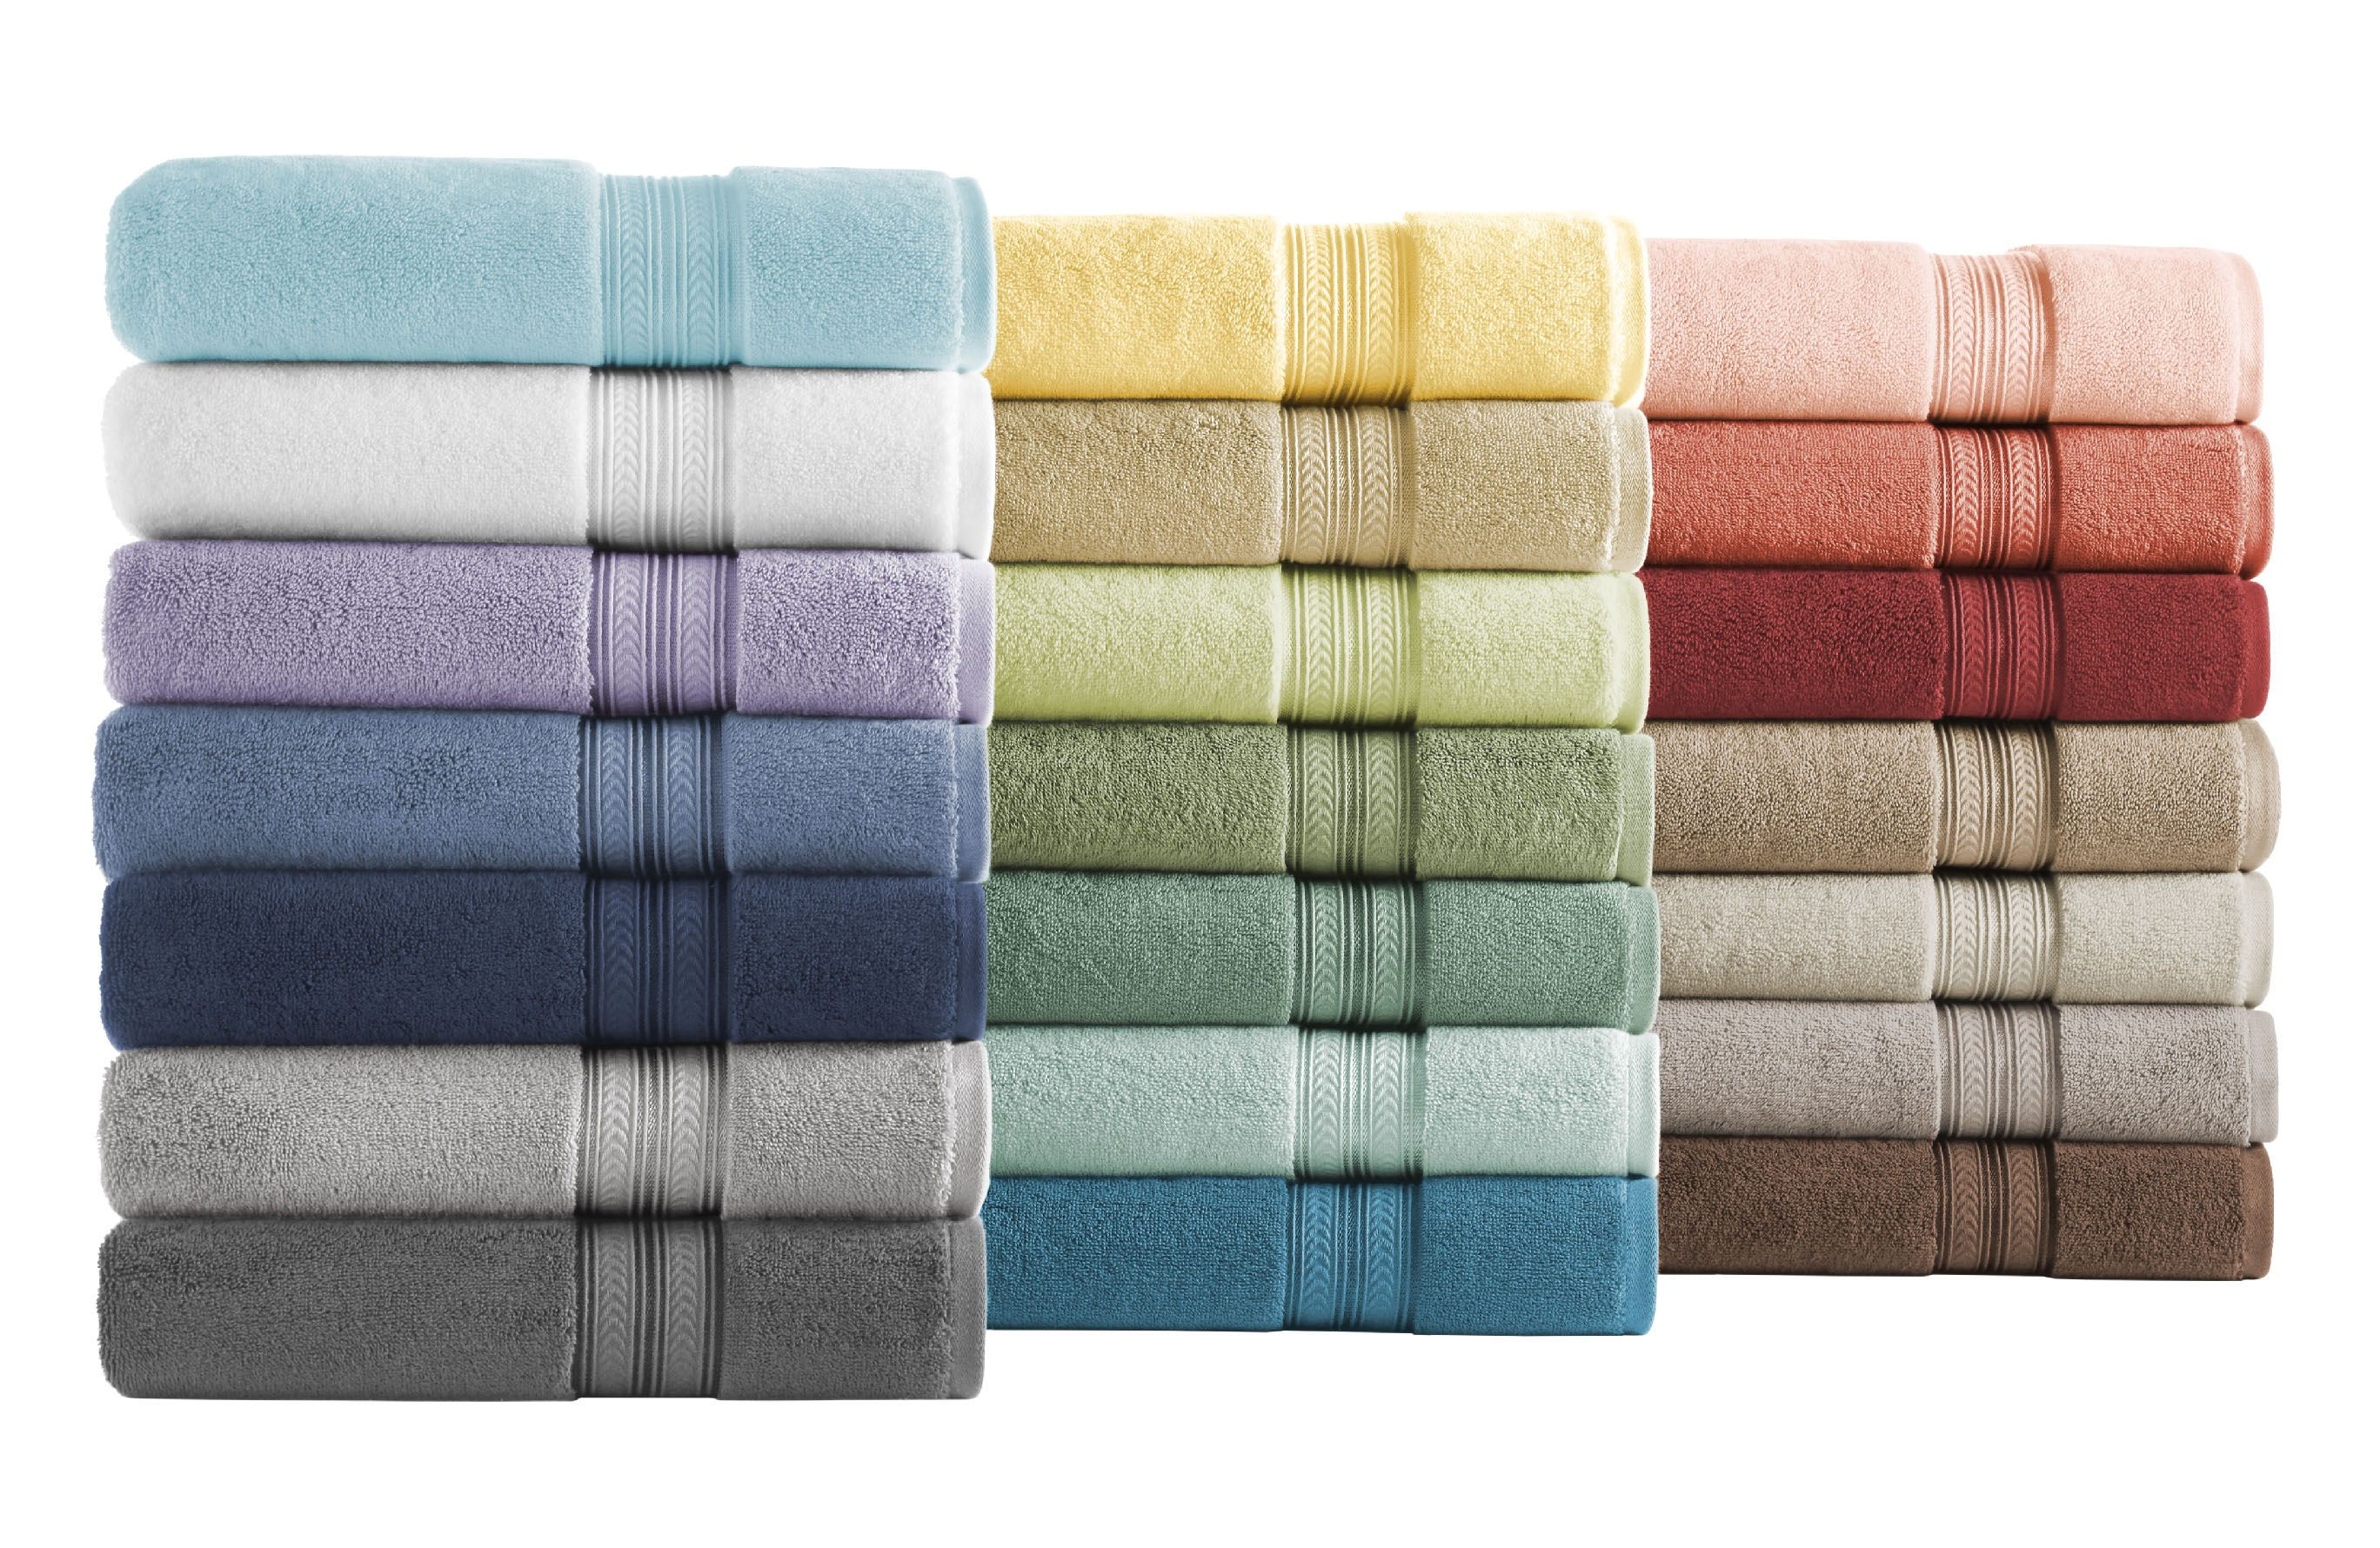 Home Bath Towels Towel Better Homes Gardens